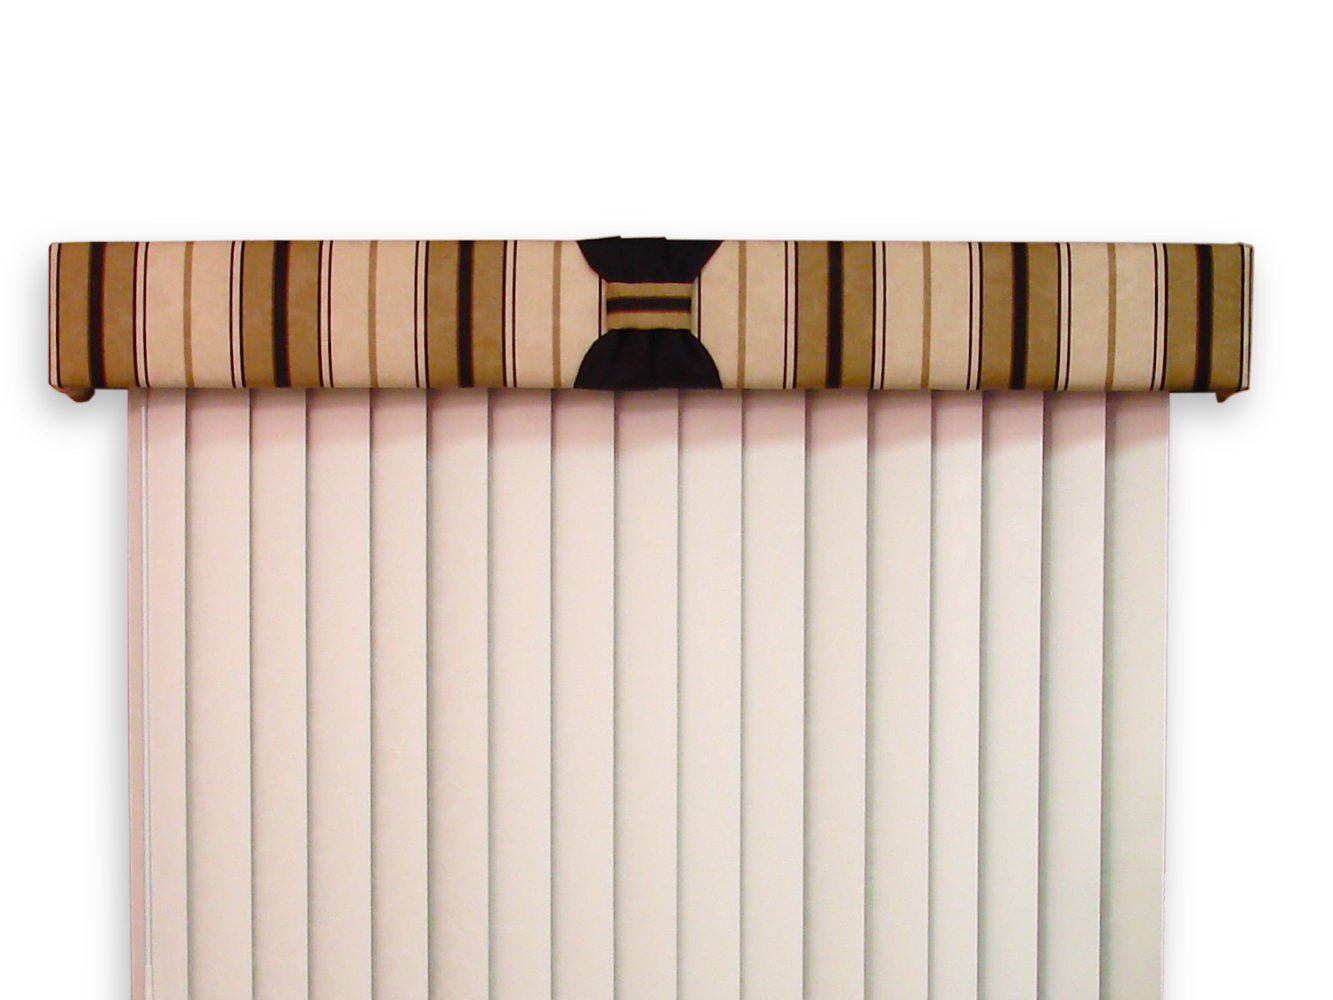 7 inch High by 48 inch Long Cornice Frame Kit. Do-It-Yourself - All Wood